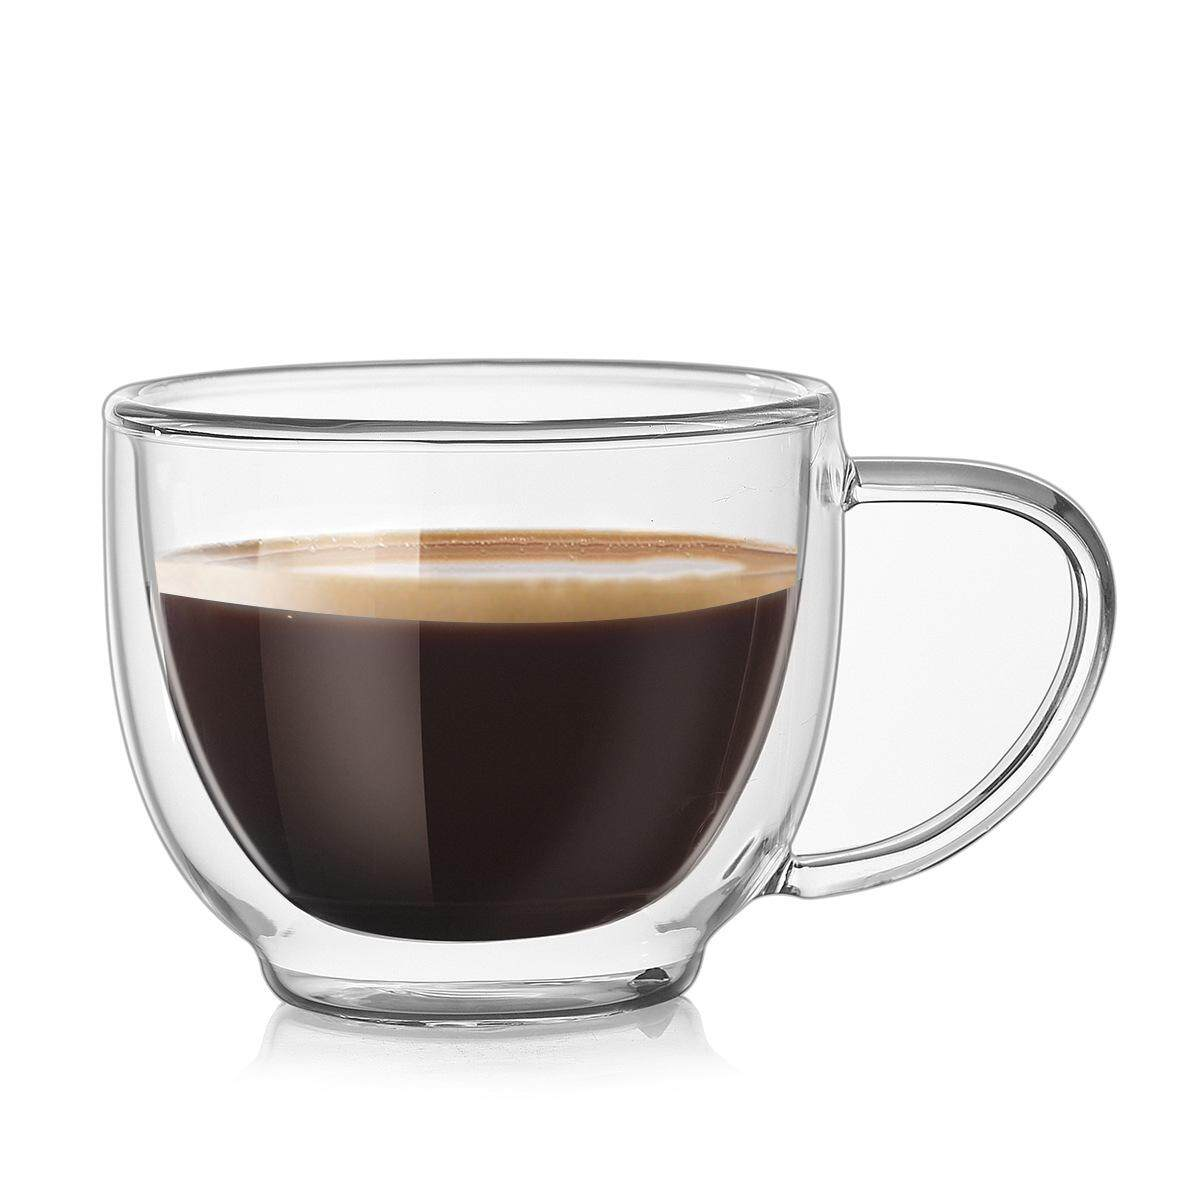 200ML Double Wall Insulated Milk Cups Glass Coffee Cup Mug With Free Cup  Brush